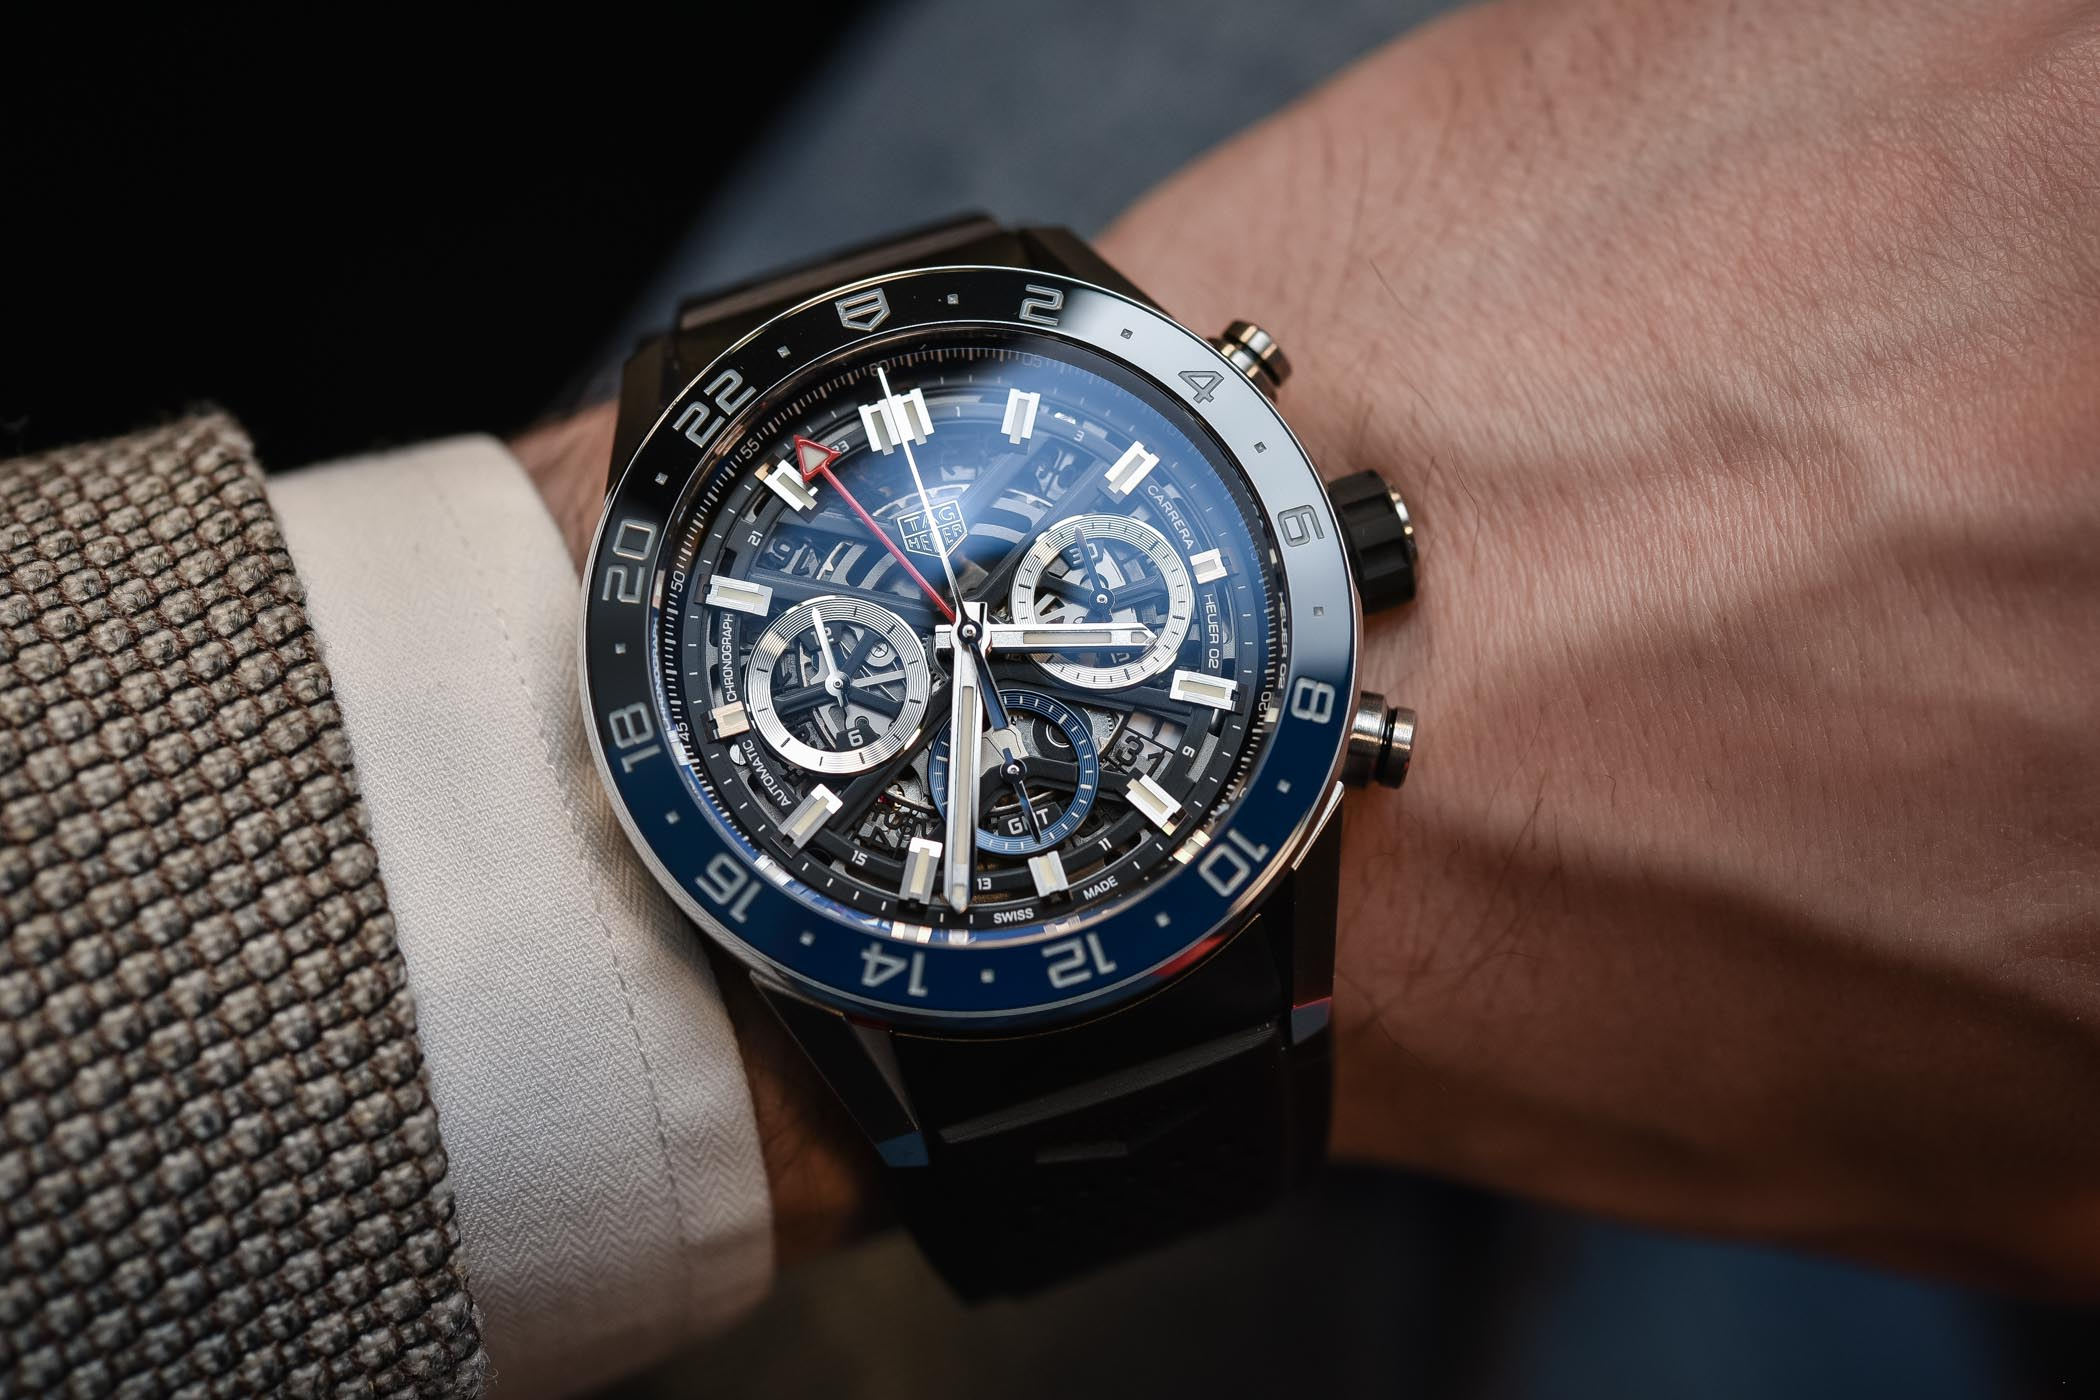 Tag heuer carrera heuer 02 gmt chronograph hands on review specs price for Tag heuer carrera